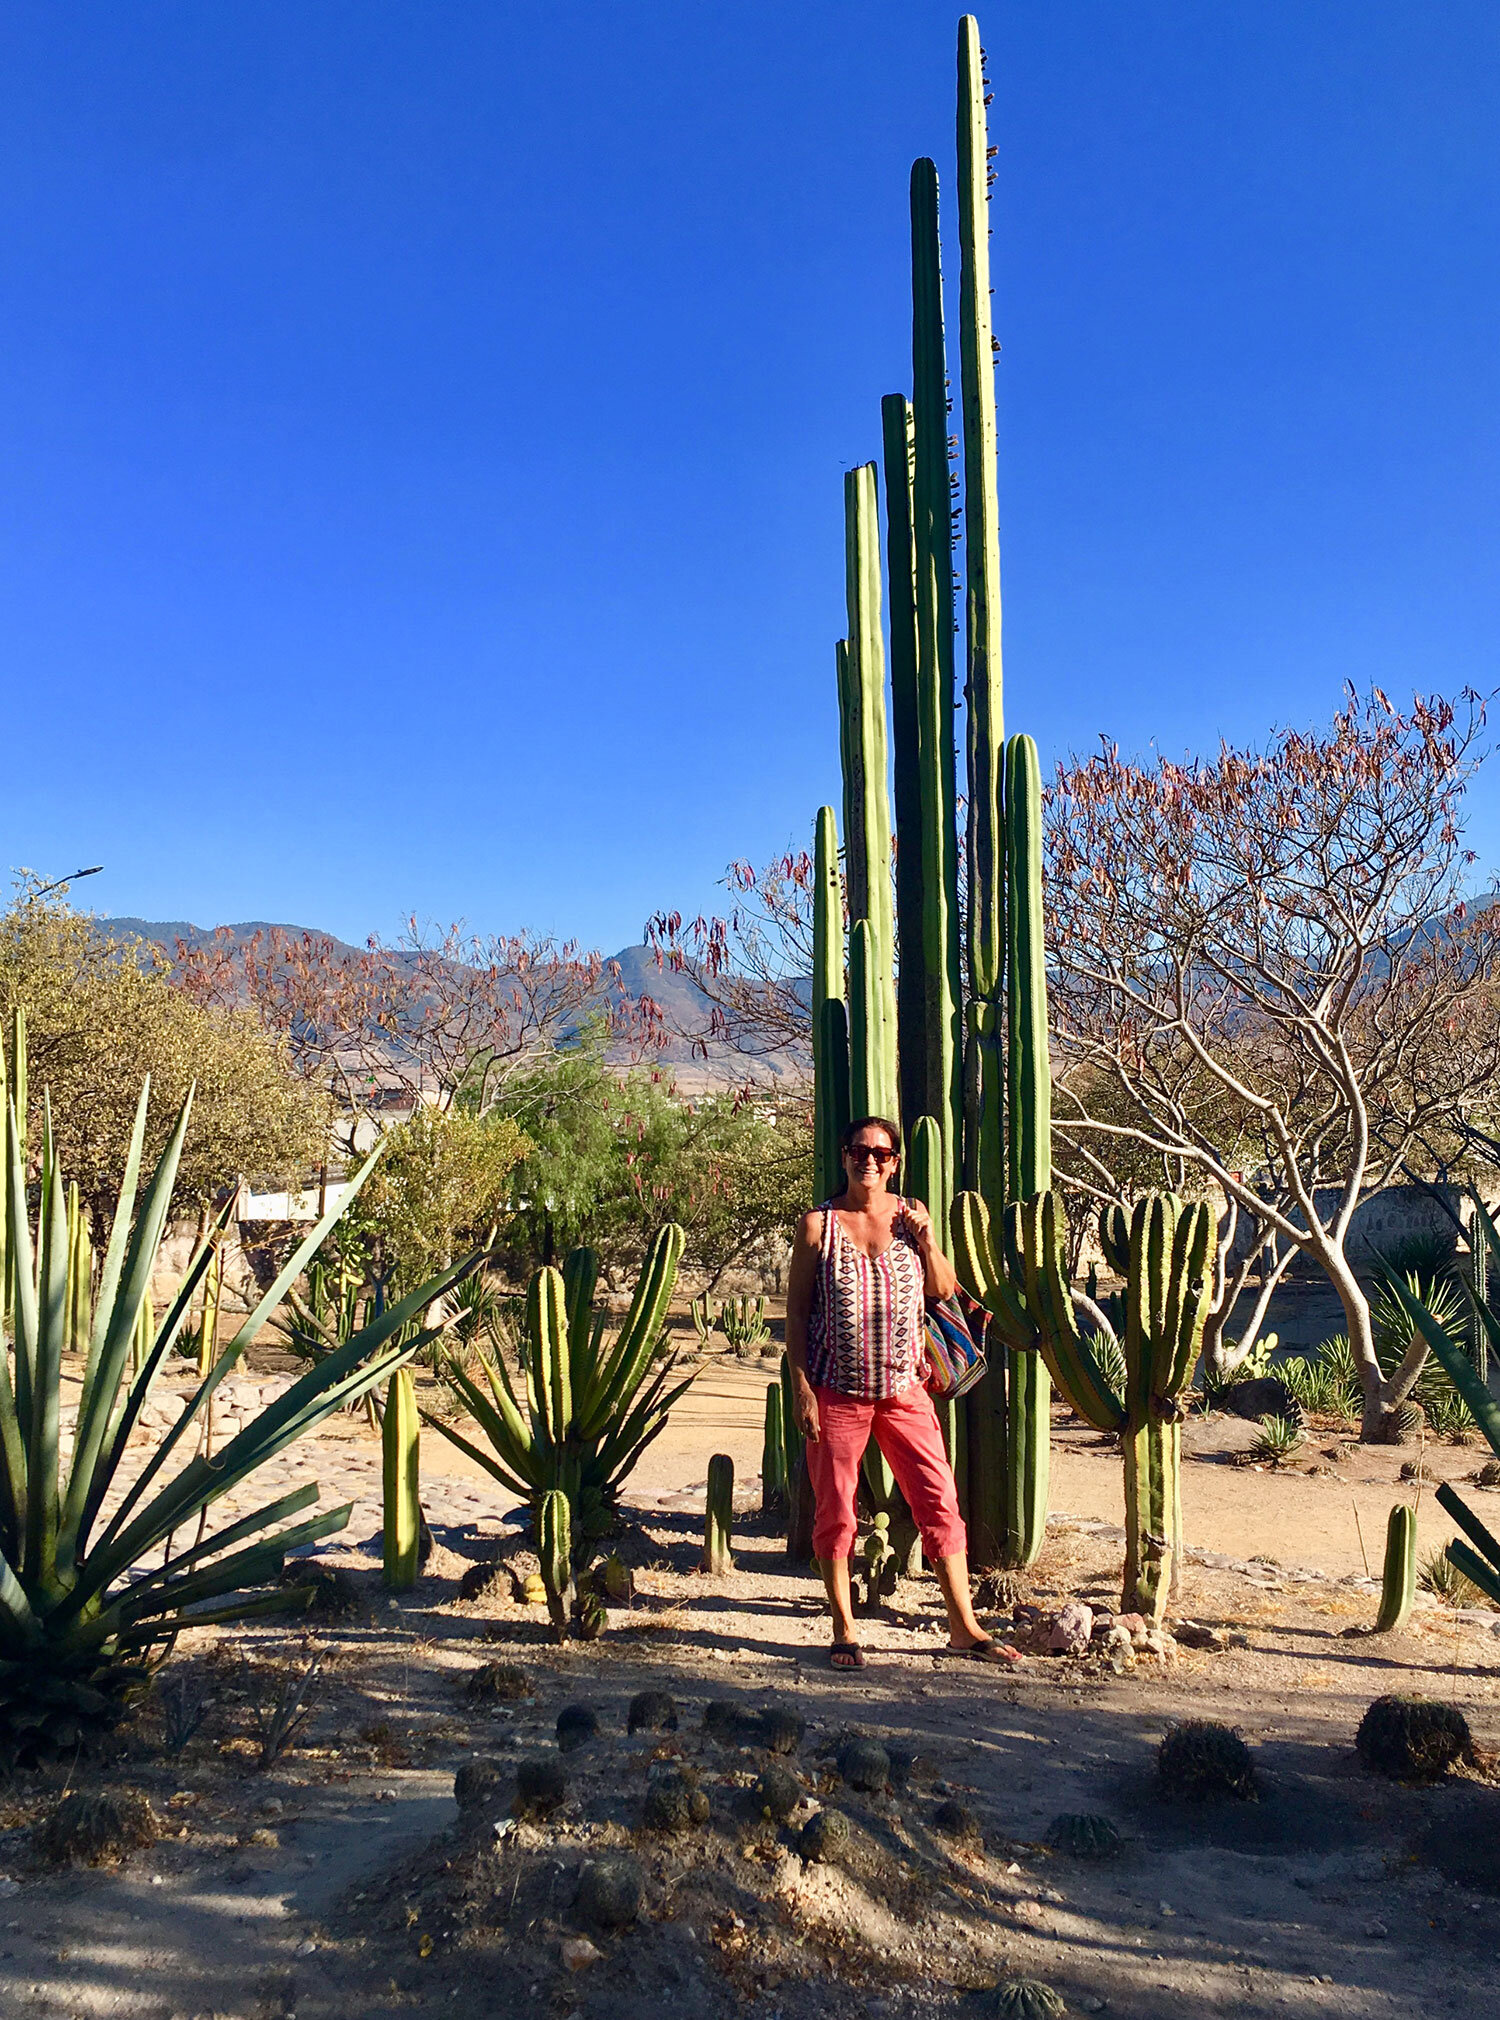 I am posing in the cactus garden of the Mitla ruins.